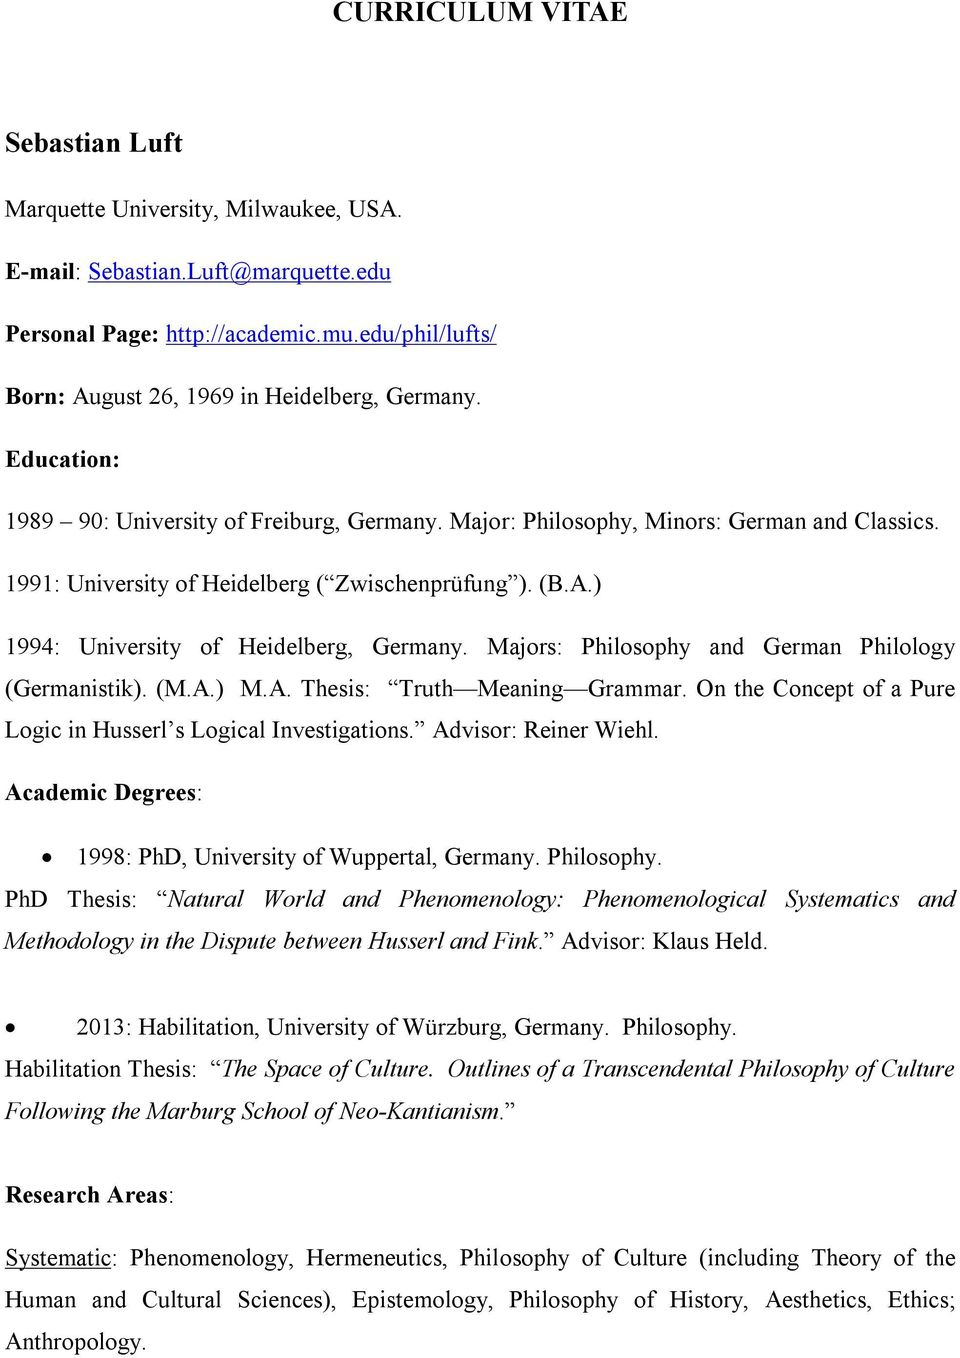 1991: University of Heidelberg ( Zwischenprüfung ). (B.A.) 1994: University of Heidelberg, Germany. Majors: Philosophy and German Philology (Germanistik). (M.A.) M.A. Thesis: Truth Meaning Grammar.